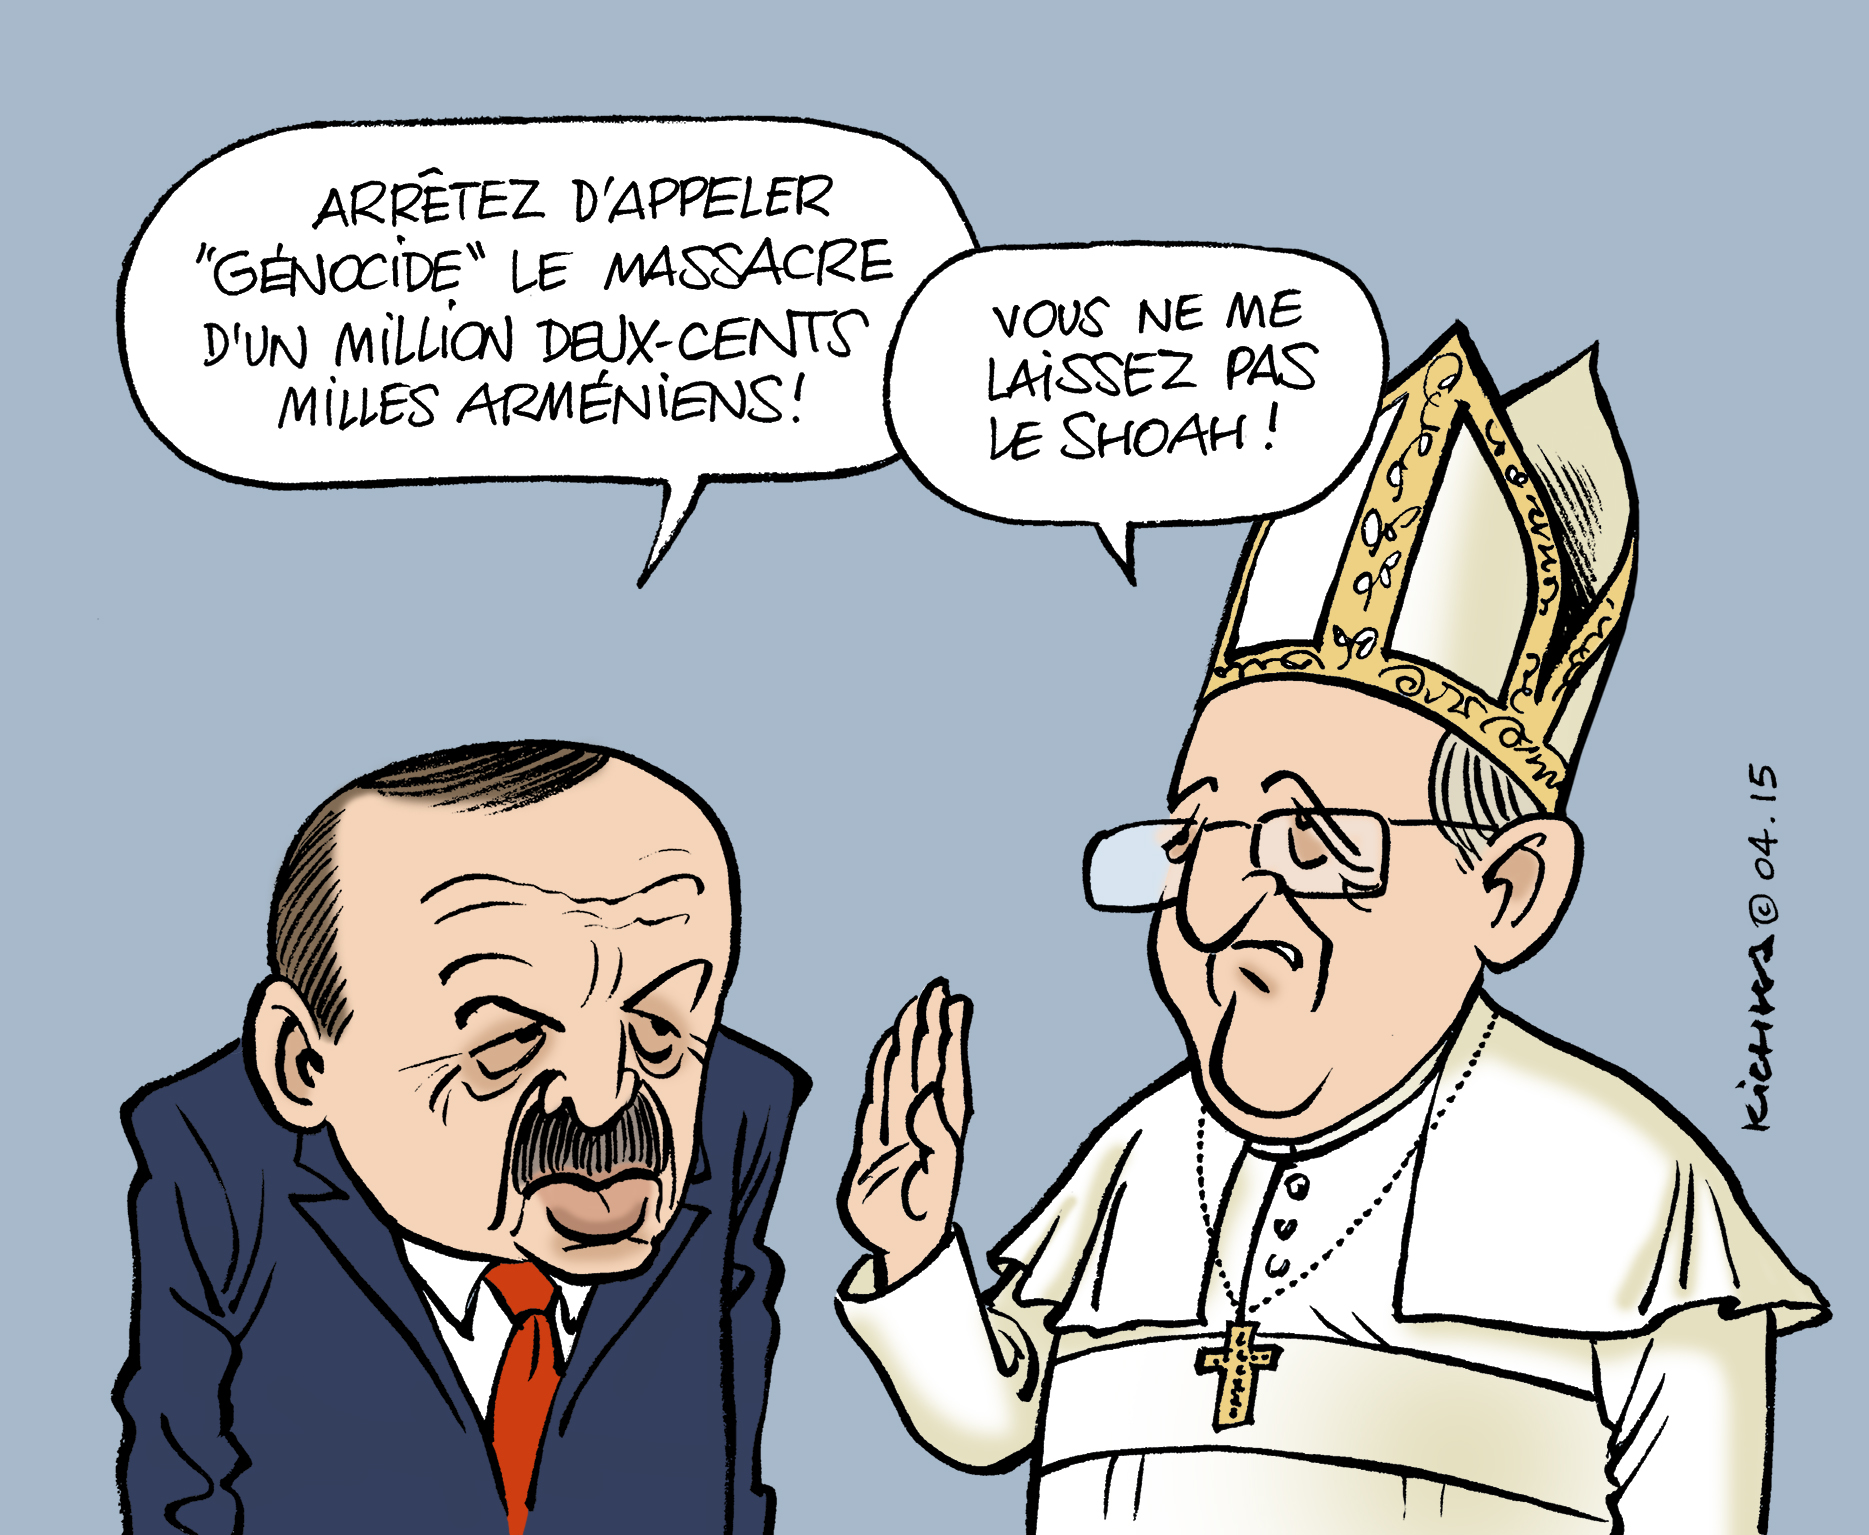 https://kichkafr.files.wordpress.com/2015/04/erdogan-pape.jpg